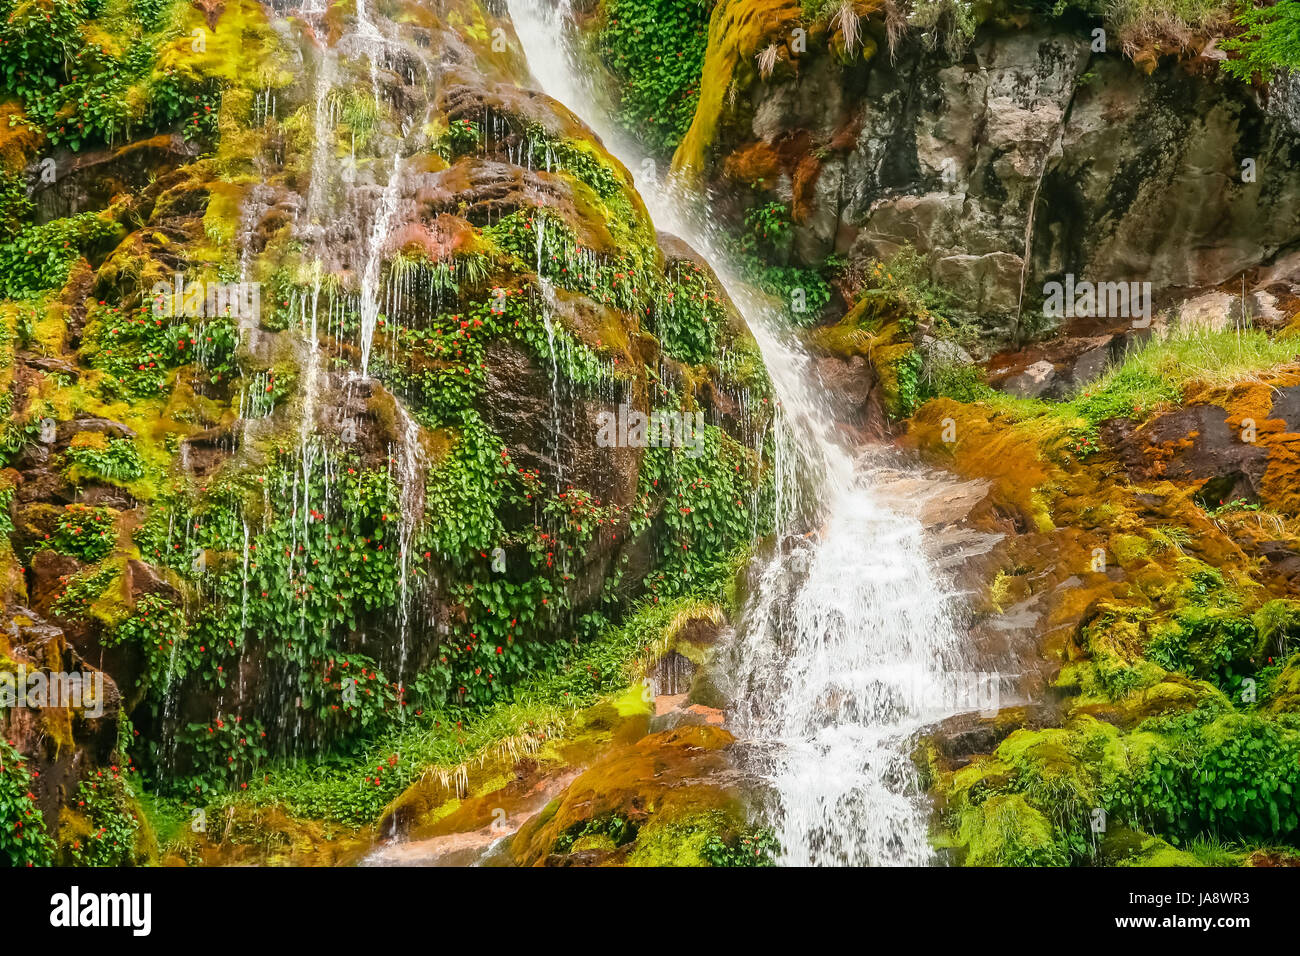 Small waterfall near Mount Fitz Roy in Argentinian Patagonia - Stock Image